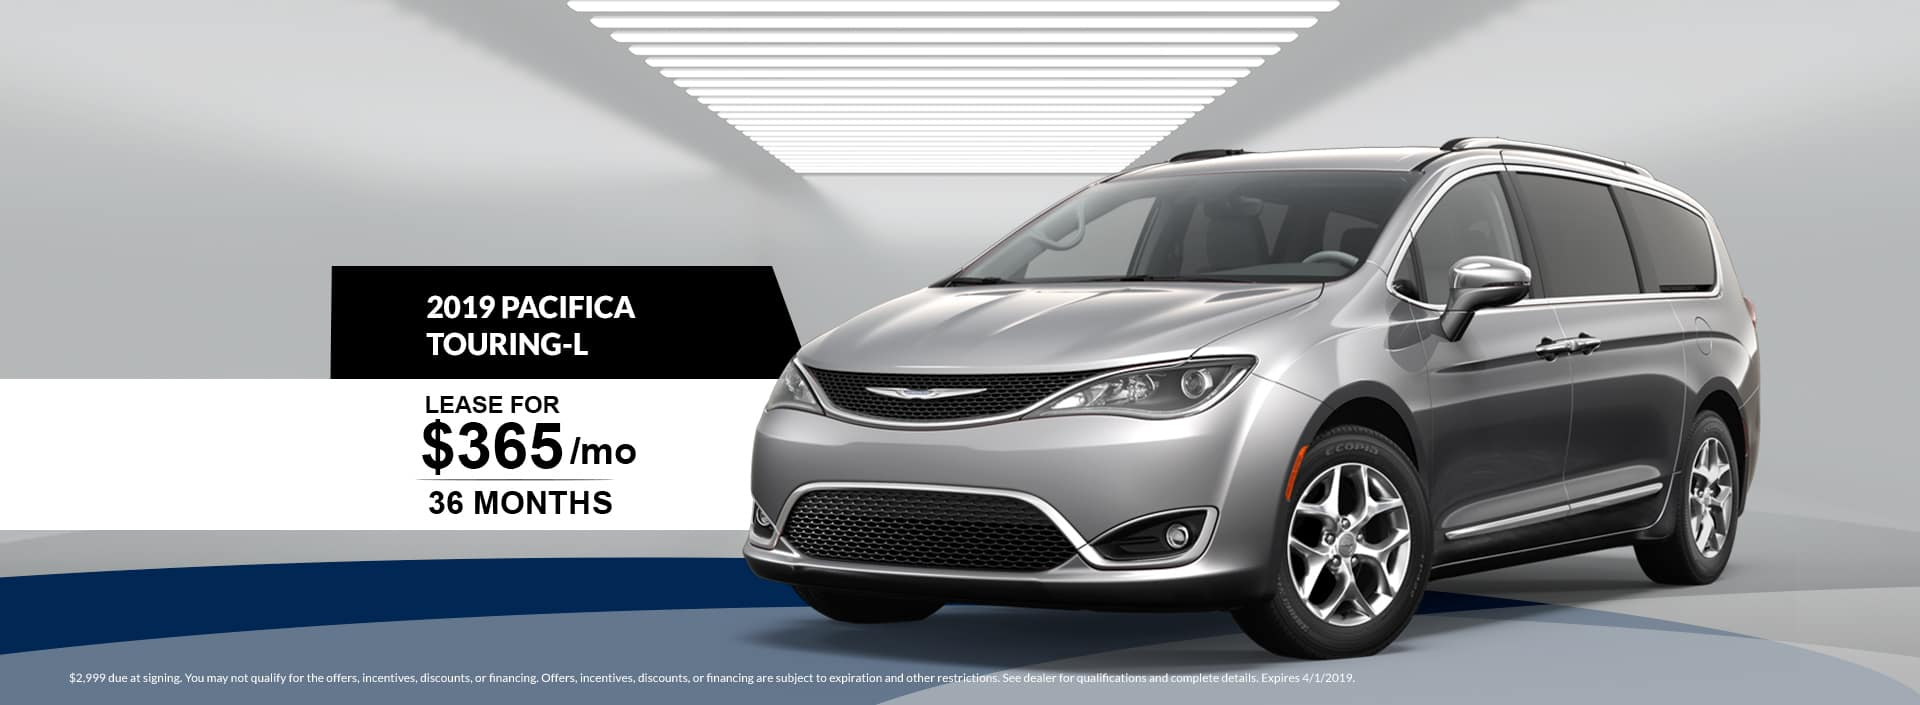 2019 Chrysler Pacifica Touring-L Lease Special at Waseca Chrysler in Waseca, MN